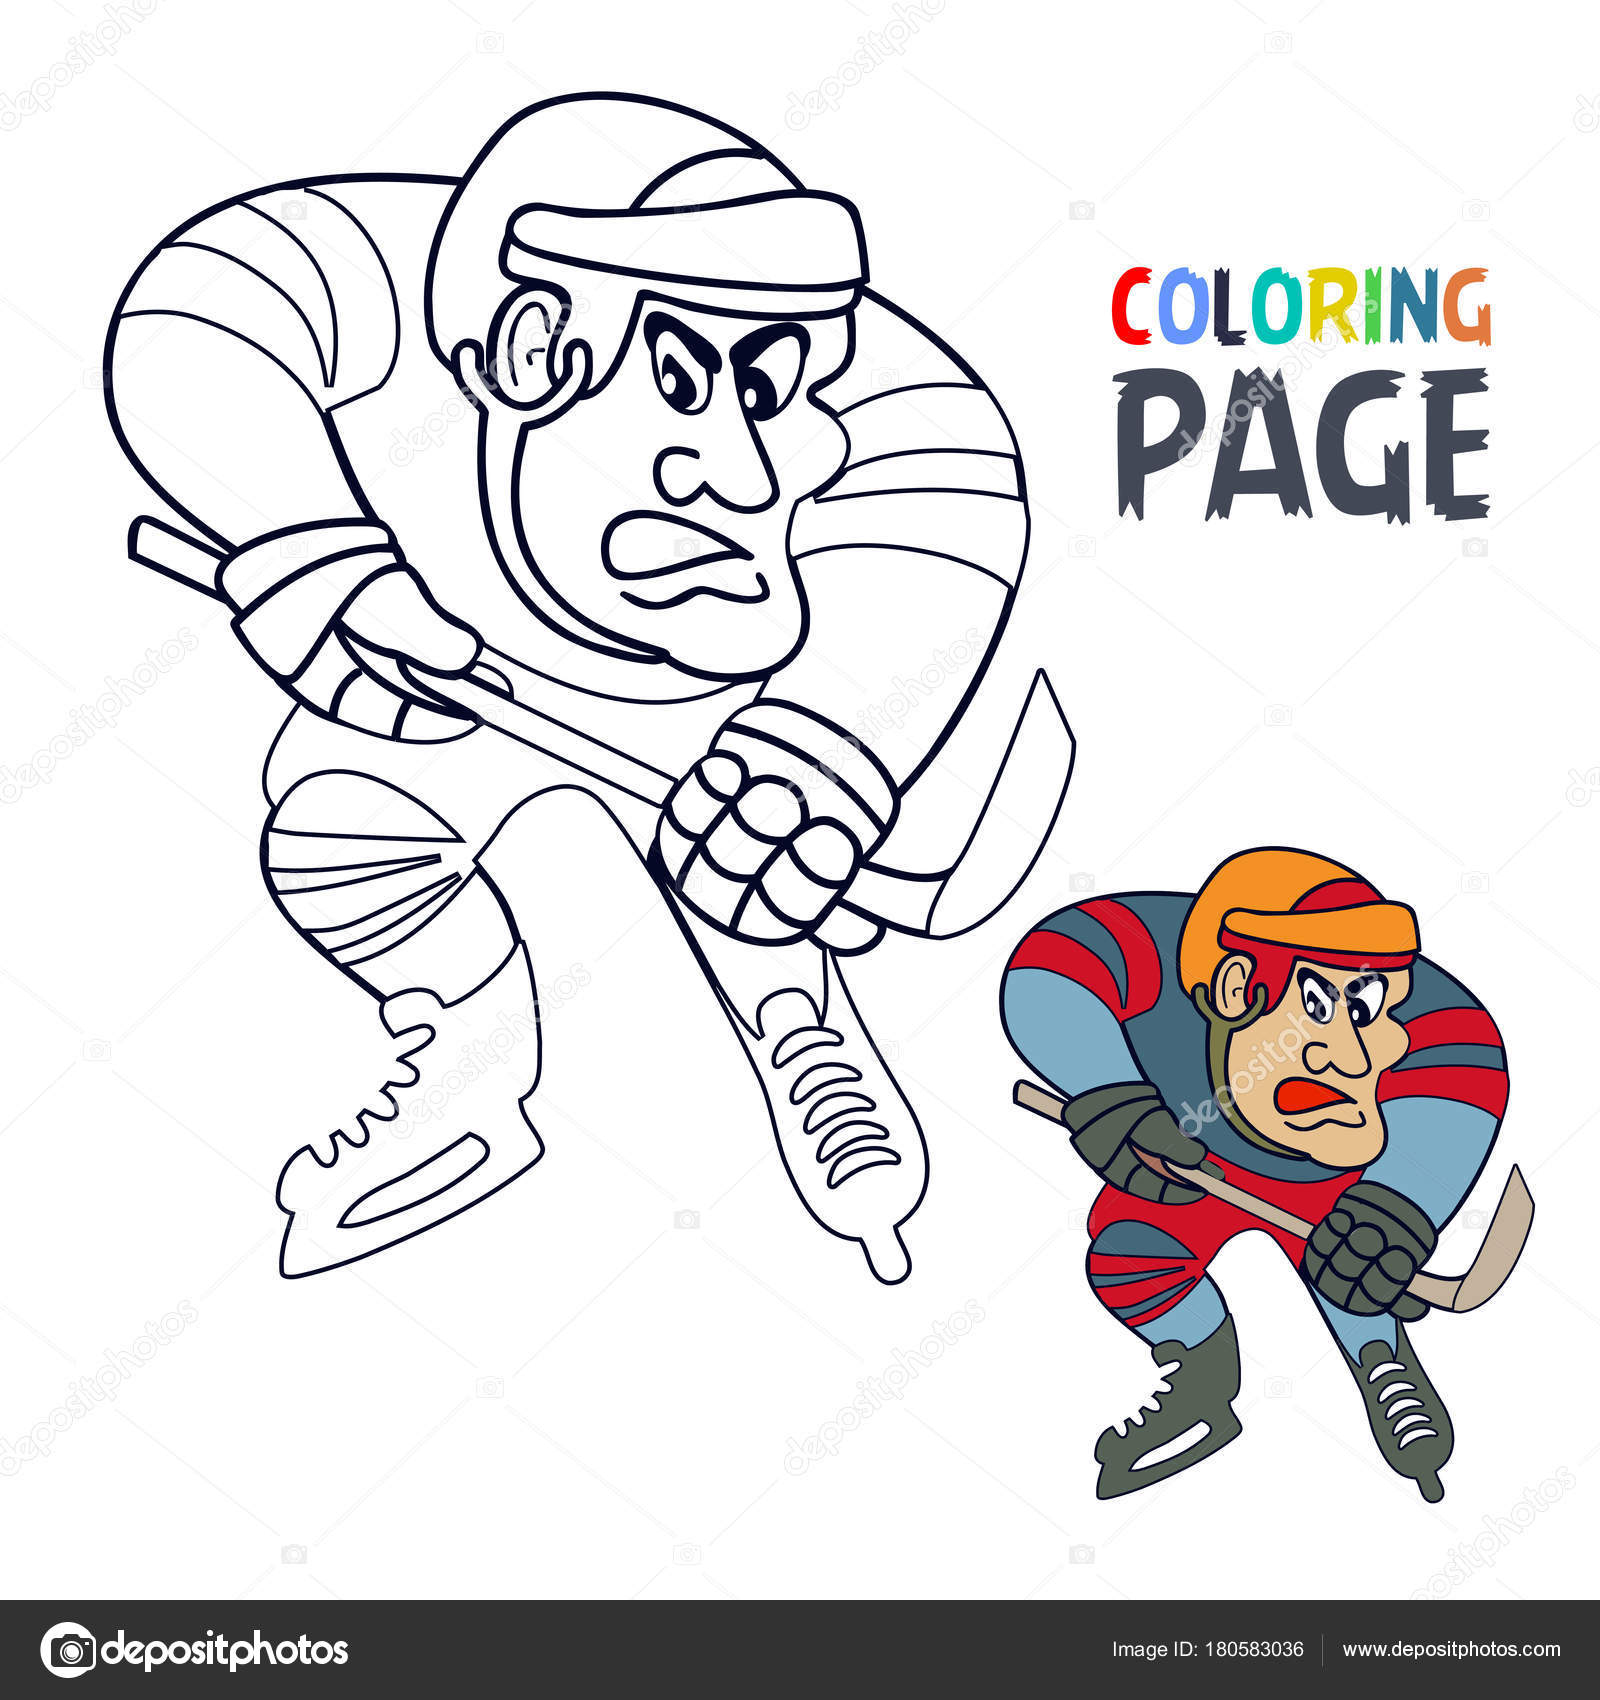 depositphotos stock illustration coloring page with hockey player